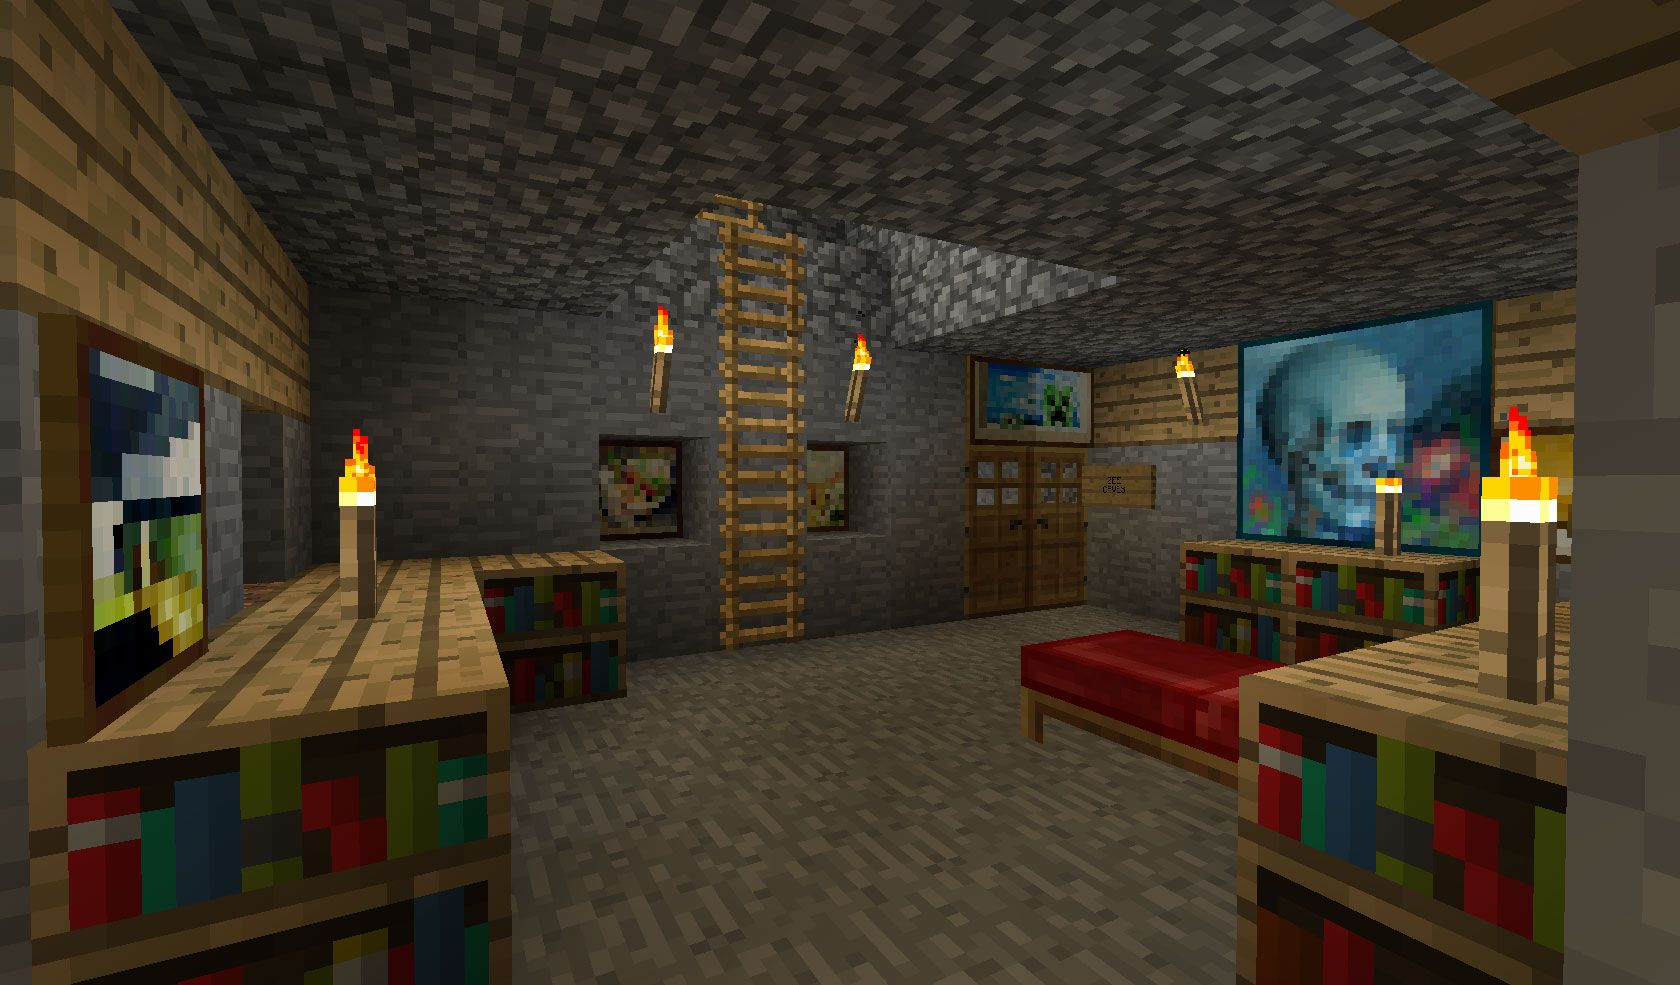 minecraft room ideas pocket edition | Minecraft bedroom ...